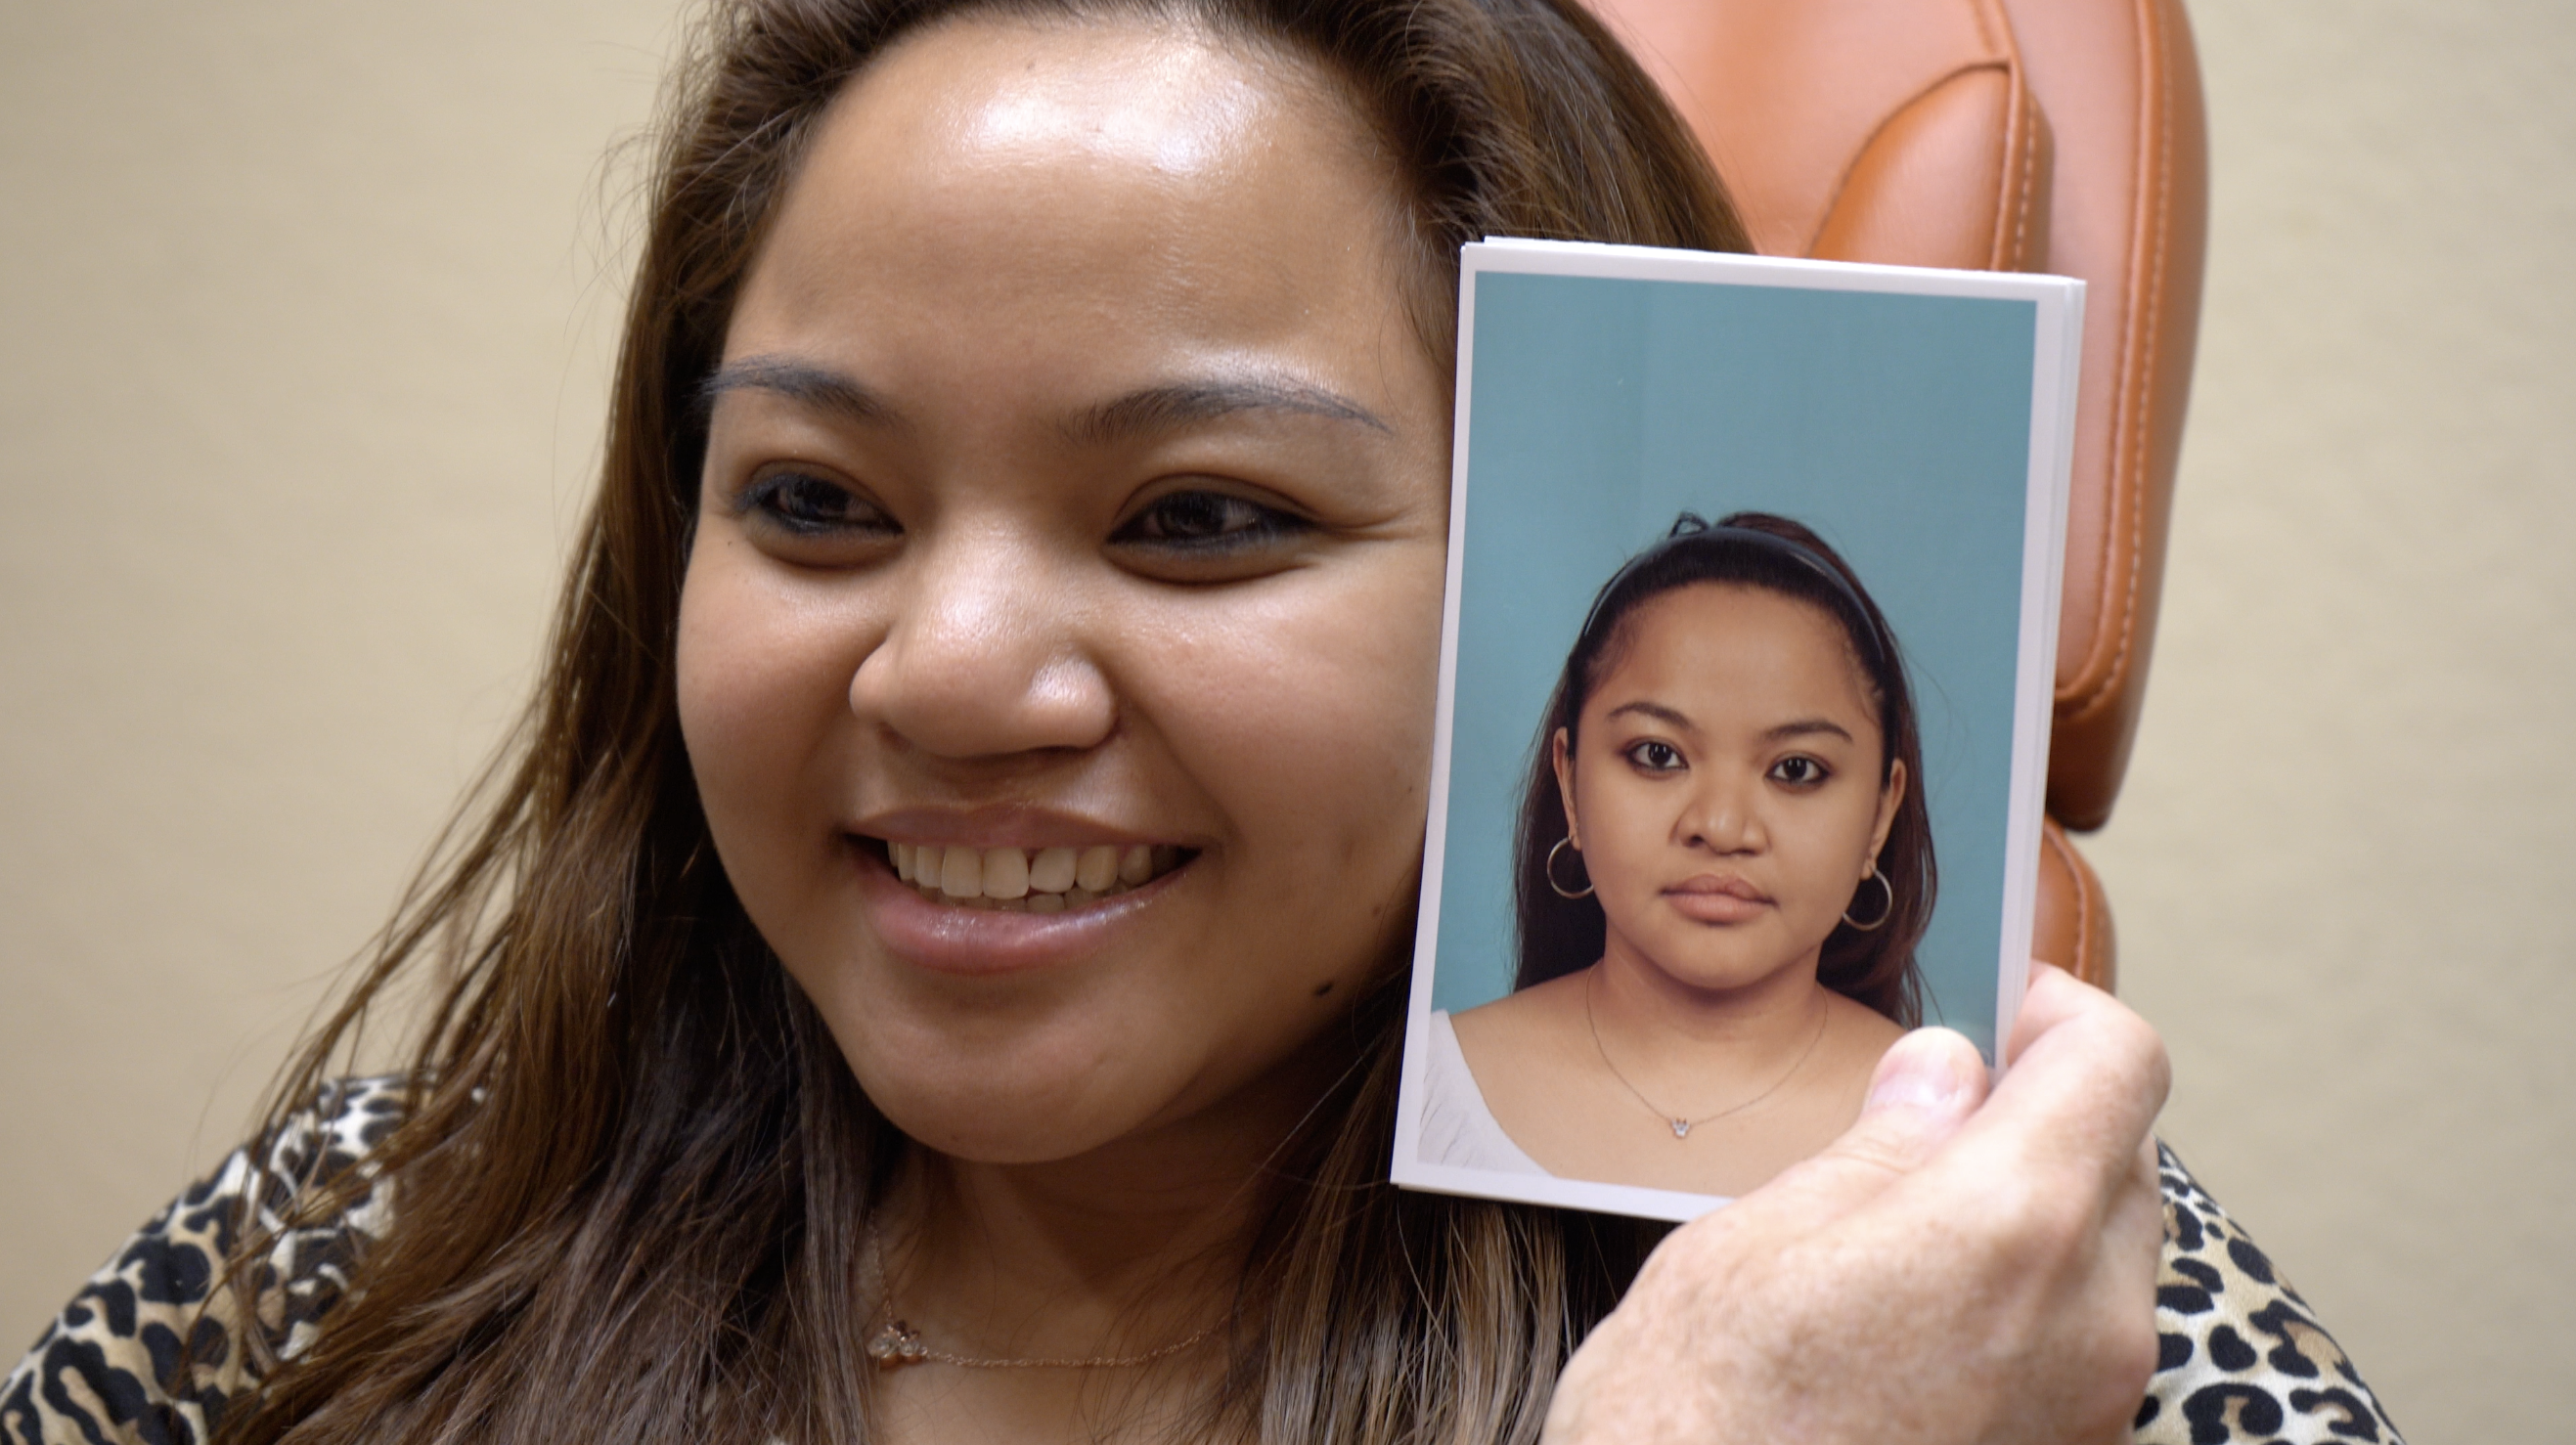 Cleft lip or palate reconstruction patient Kirsten T. shows off results at Primera Plastic Surgery in Lake Mary, Florida